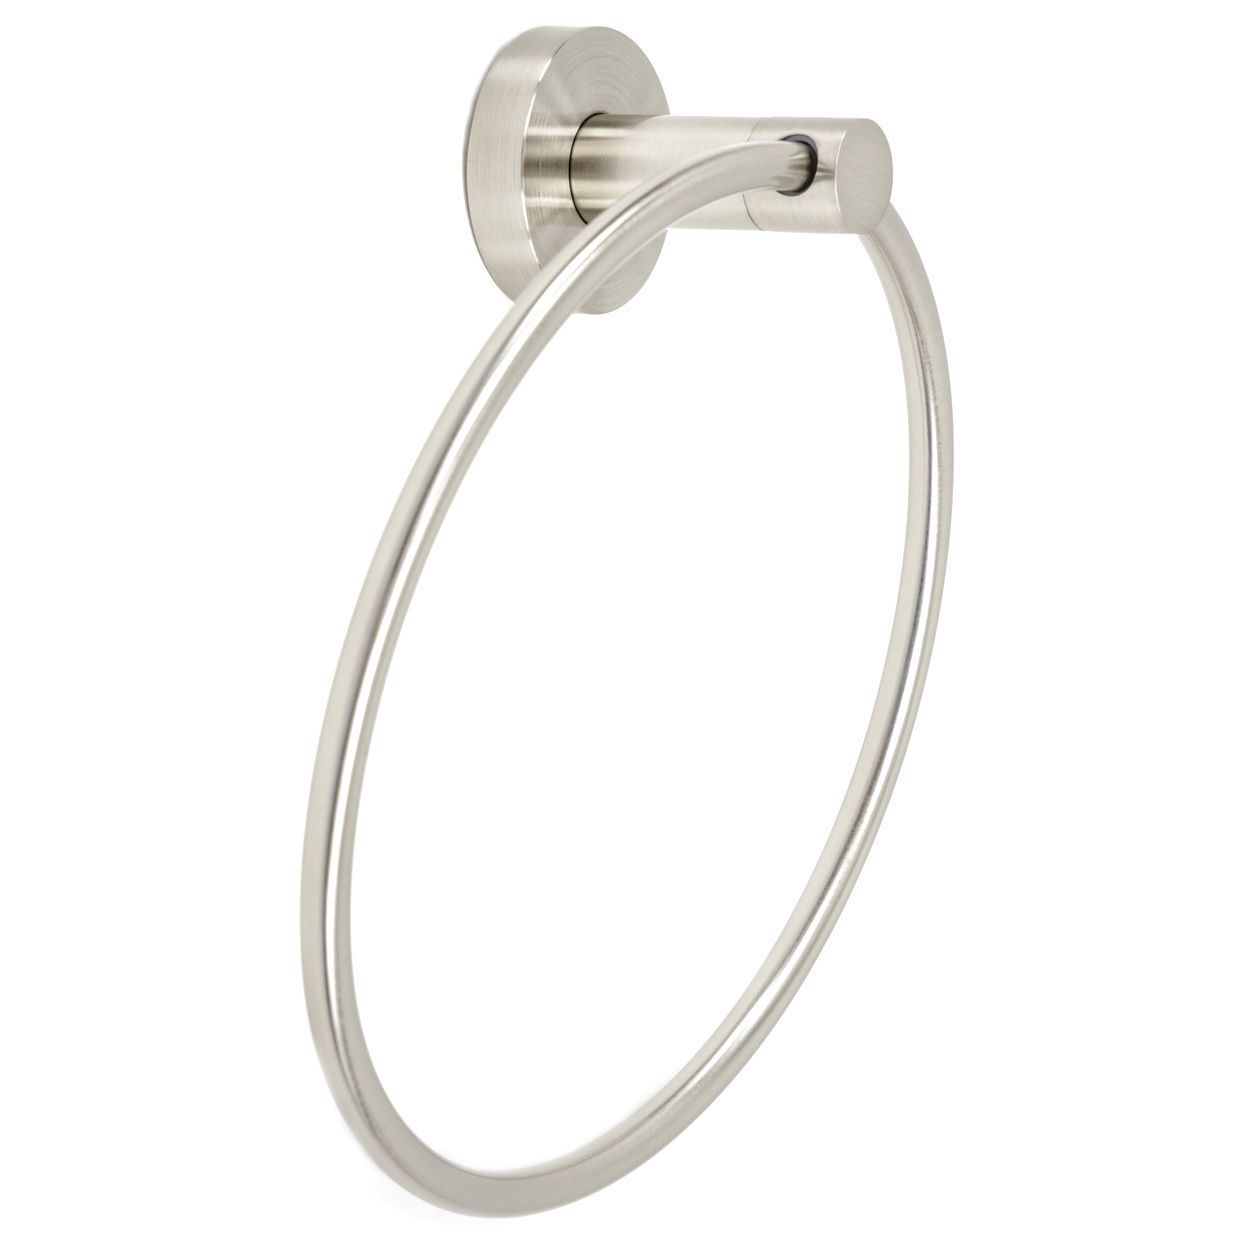 Overstock Com Online Shopping Bedding Furniture Electronics Jewelry Clothing More Towel Rings Brushed Nickel Bathroom Holder